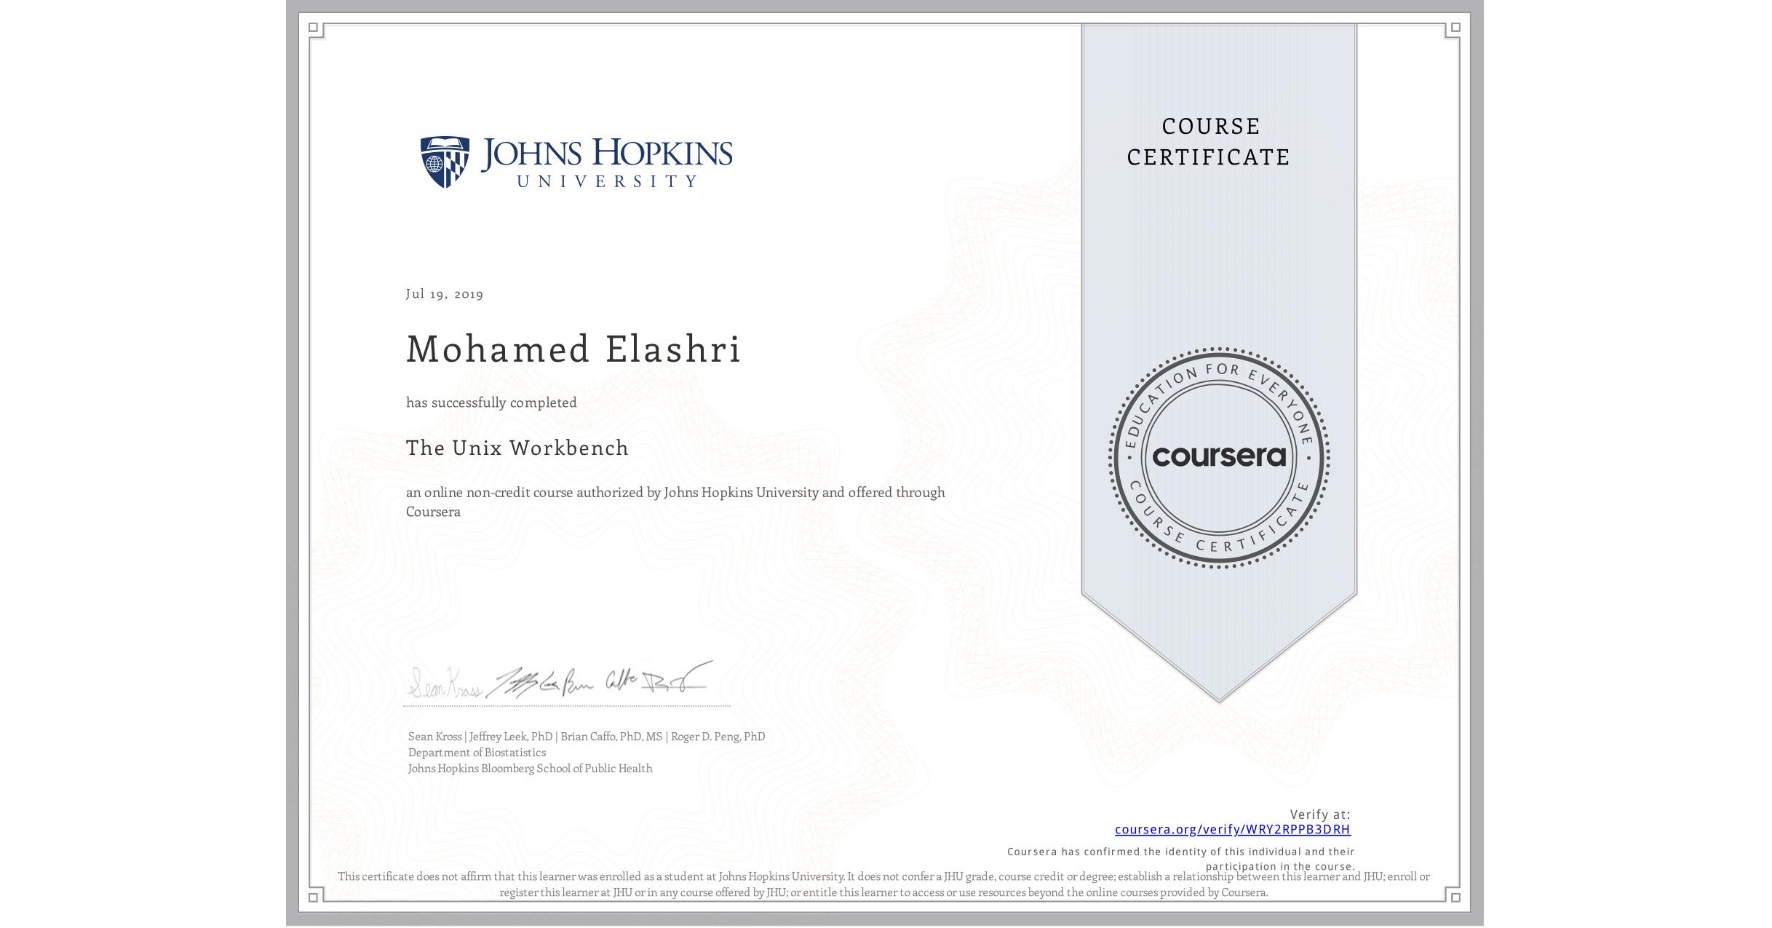 View certificate for Mohamed Elashri, The Unix Workbench, an online non-credit course authorized by Johns Hopkins University and offered through Coursera